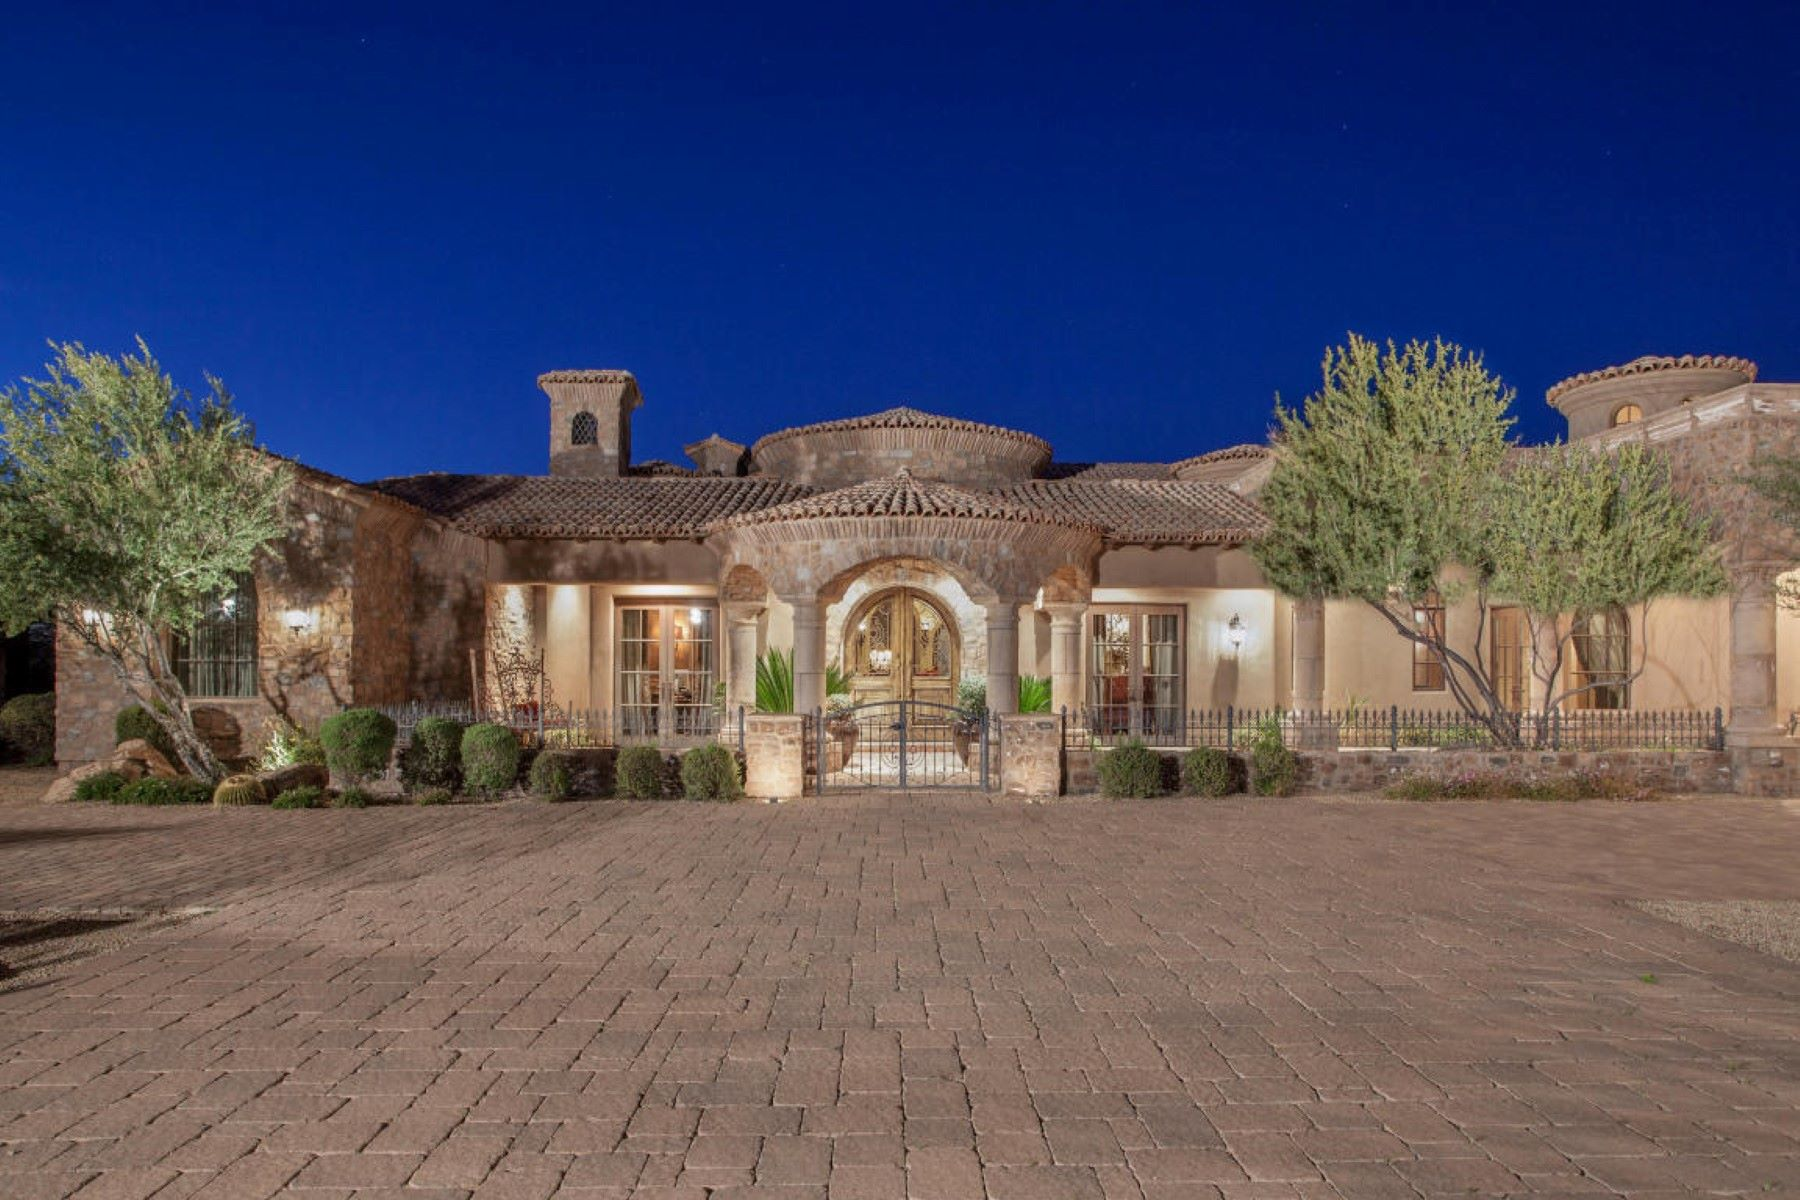 Частный односемейный дом для того Продажа на Incredible sprawling estate situated on acres of beautiful Sonoran Desert 8143 E Stagecoach Pass Scottsdale, Аризона, 85266 Соединенные Штаты